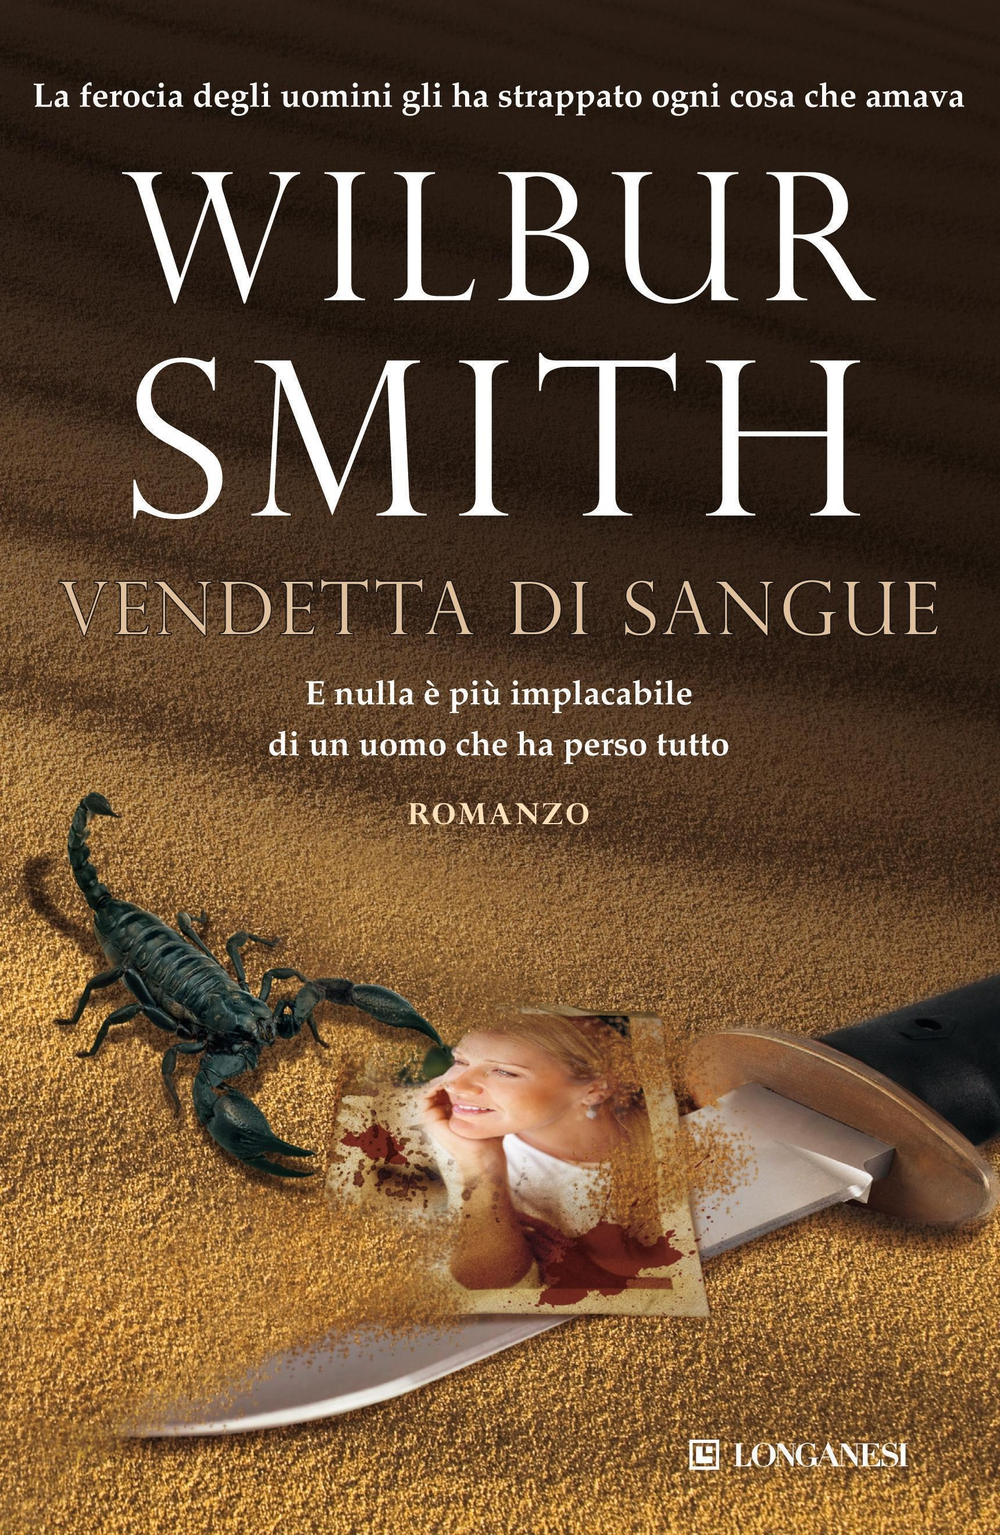 Vendetta di sangue